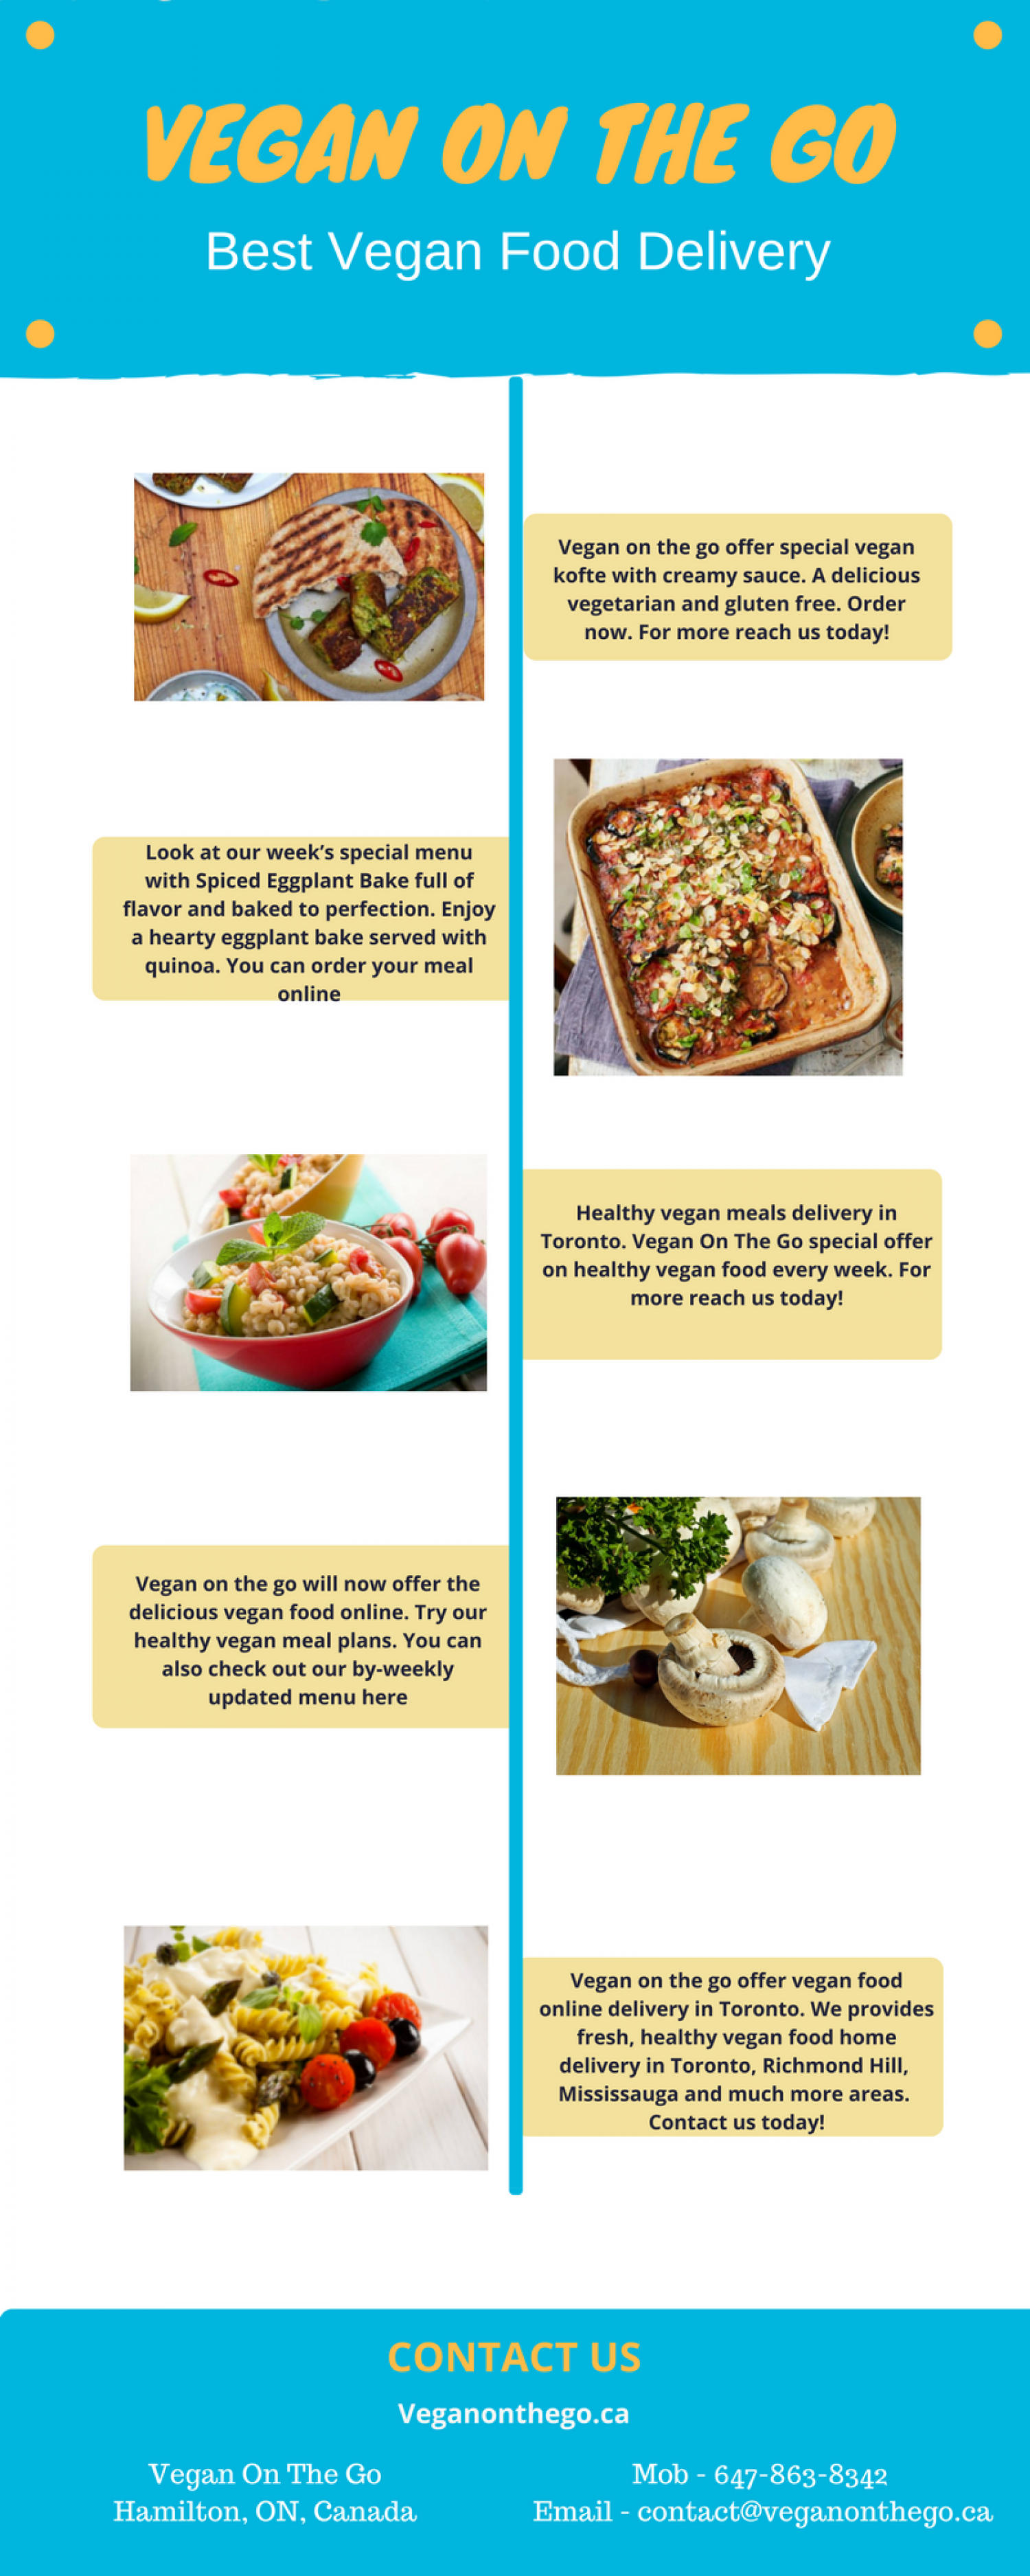 Best Vegetarian Food Delivery - Vegan on the go Infographic